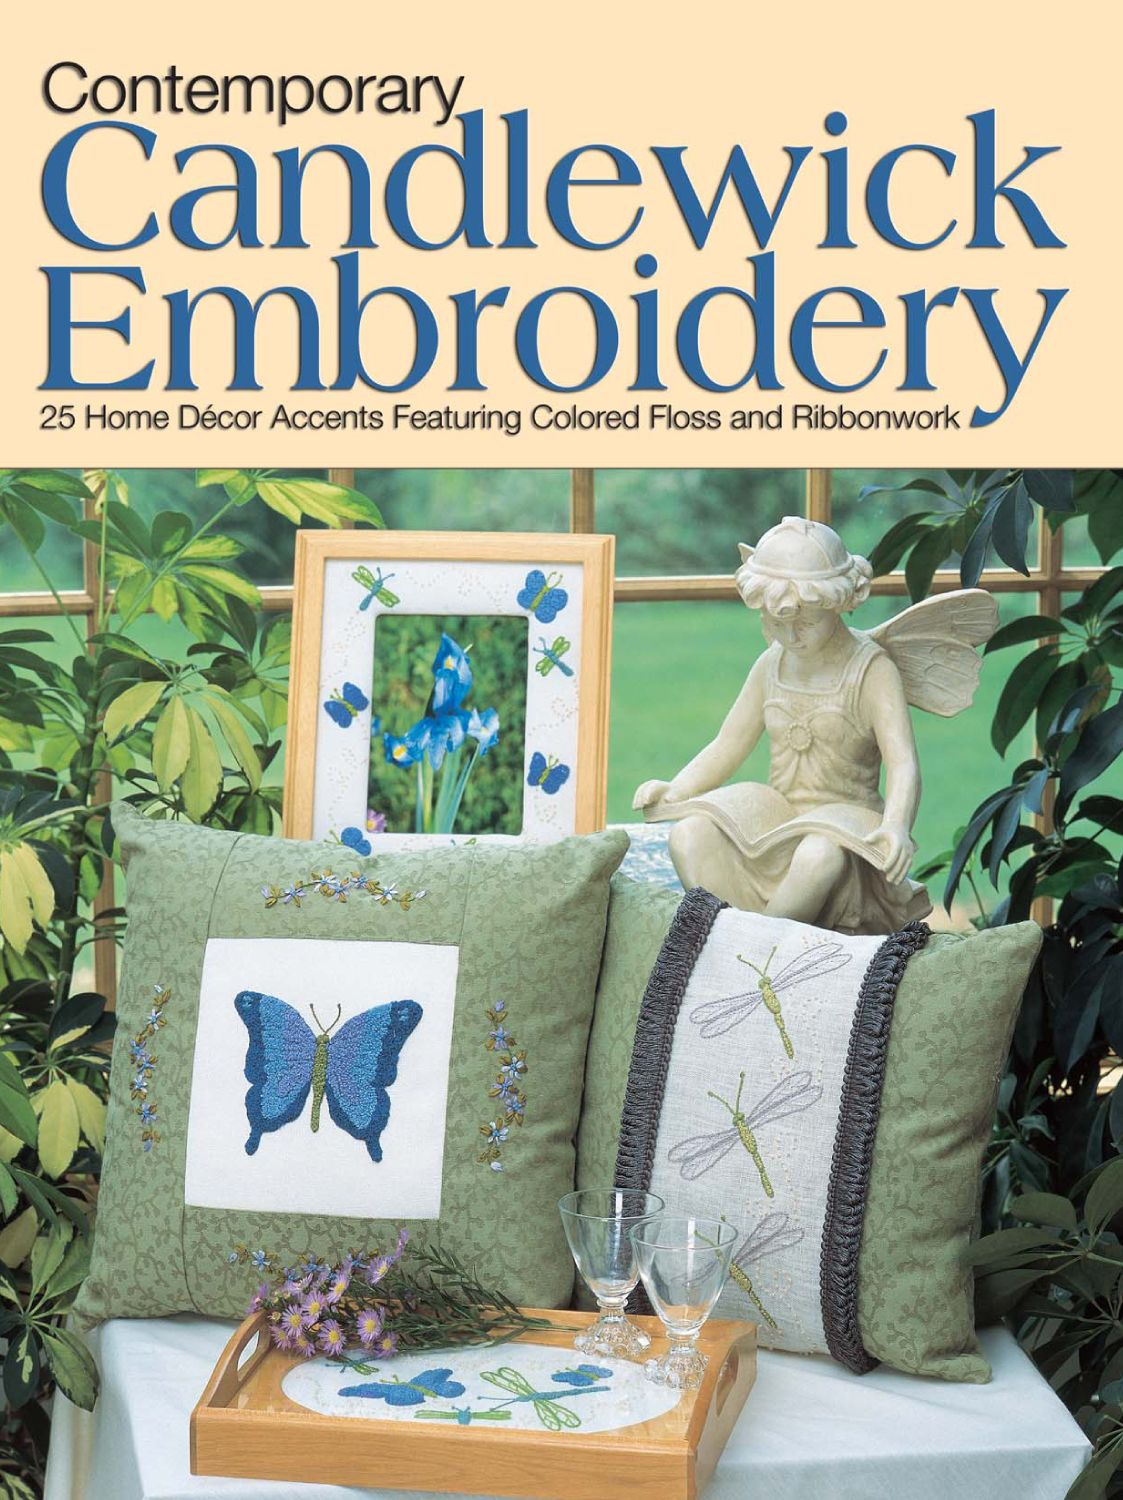 Contemporary Candlewick Embroidery: 25 Home Decor Accents Featuring Colored Floss & Ribbonwork